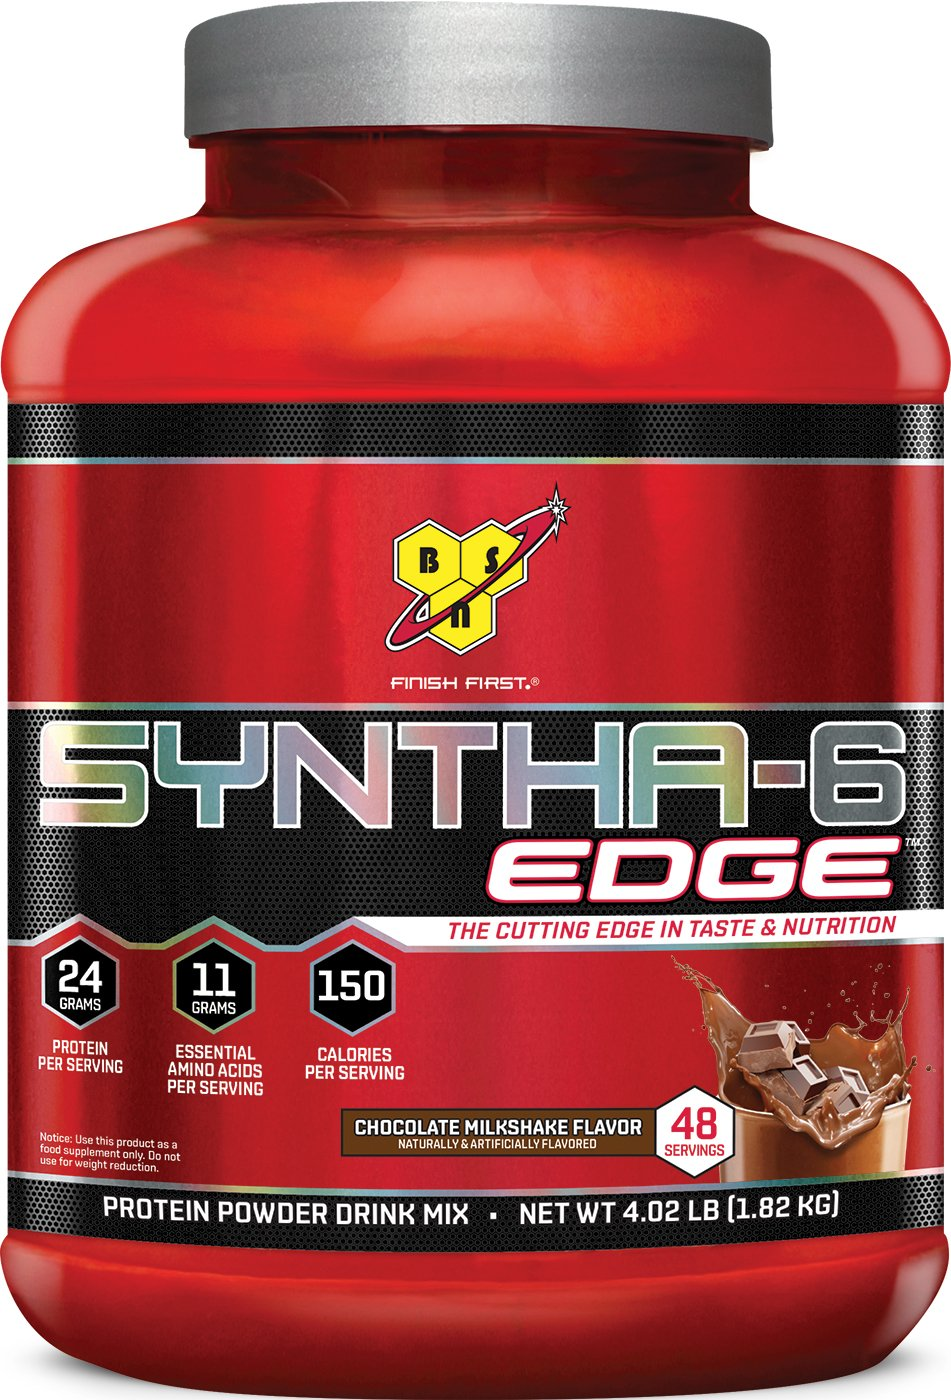 BSN SYNTHA-6 EDGE Whey Protein Powder, Hydrolyzed Whey, Micellar Casein, Milk Protein Isolate Meal Replacement Powder, Chocolate Milkshake, 48 Servings